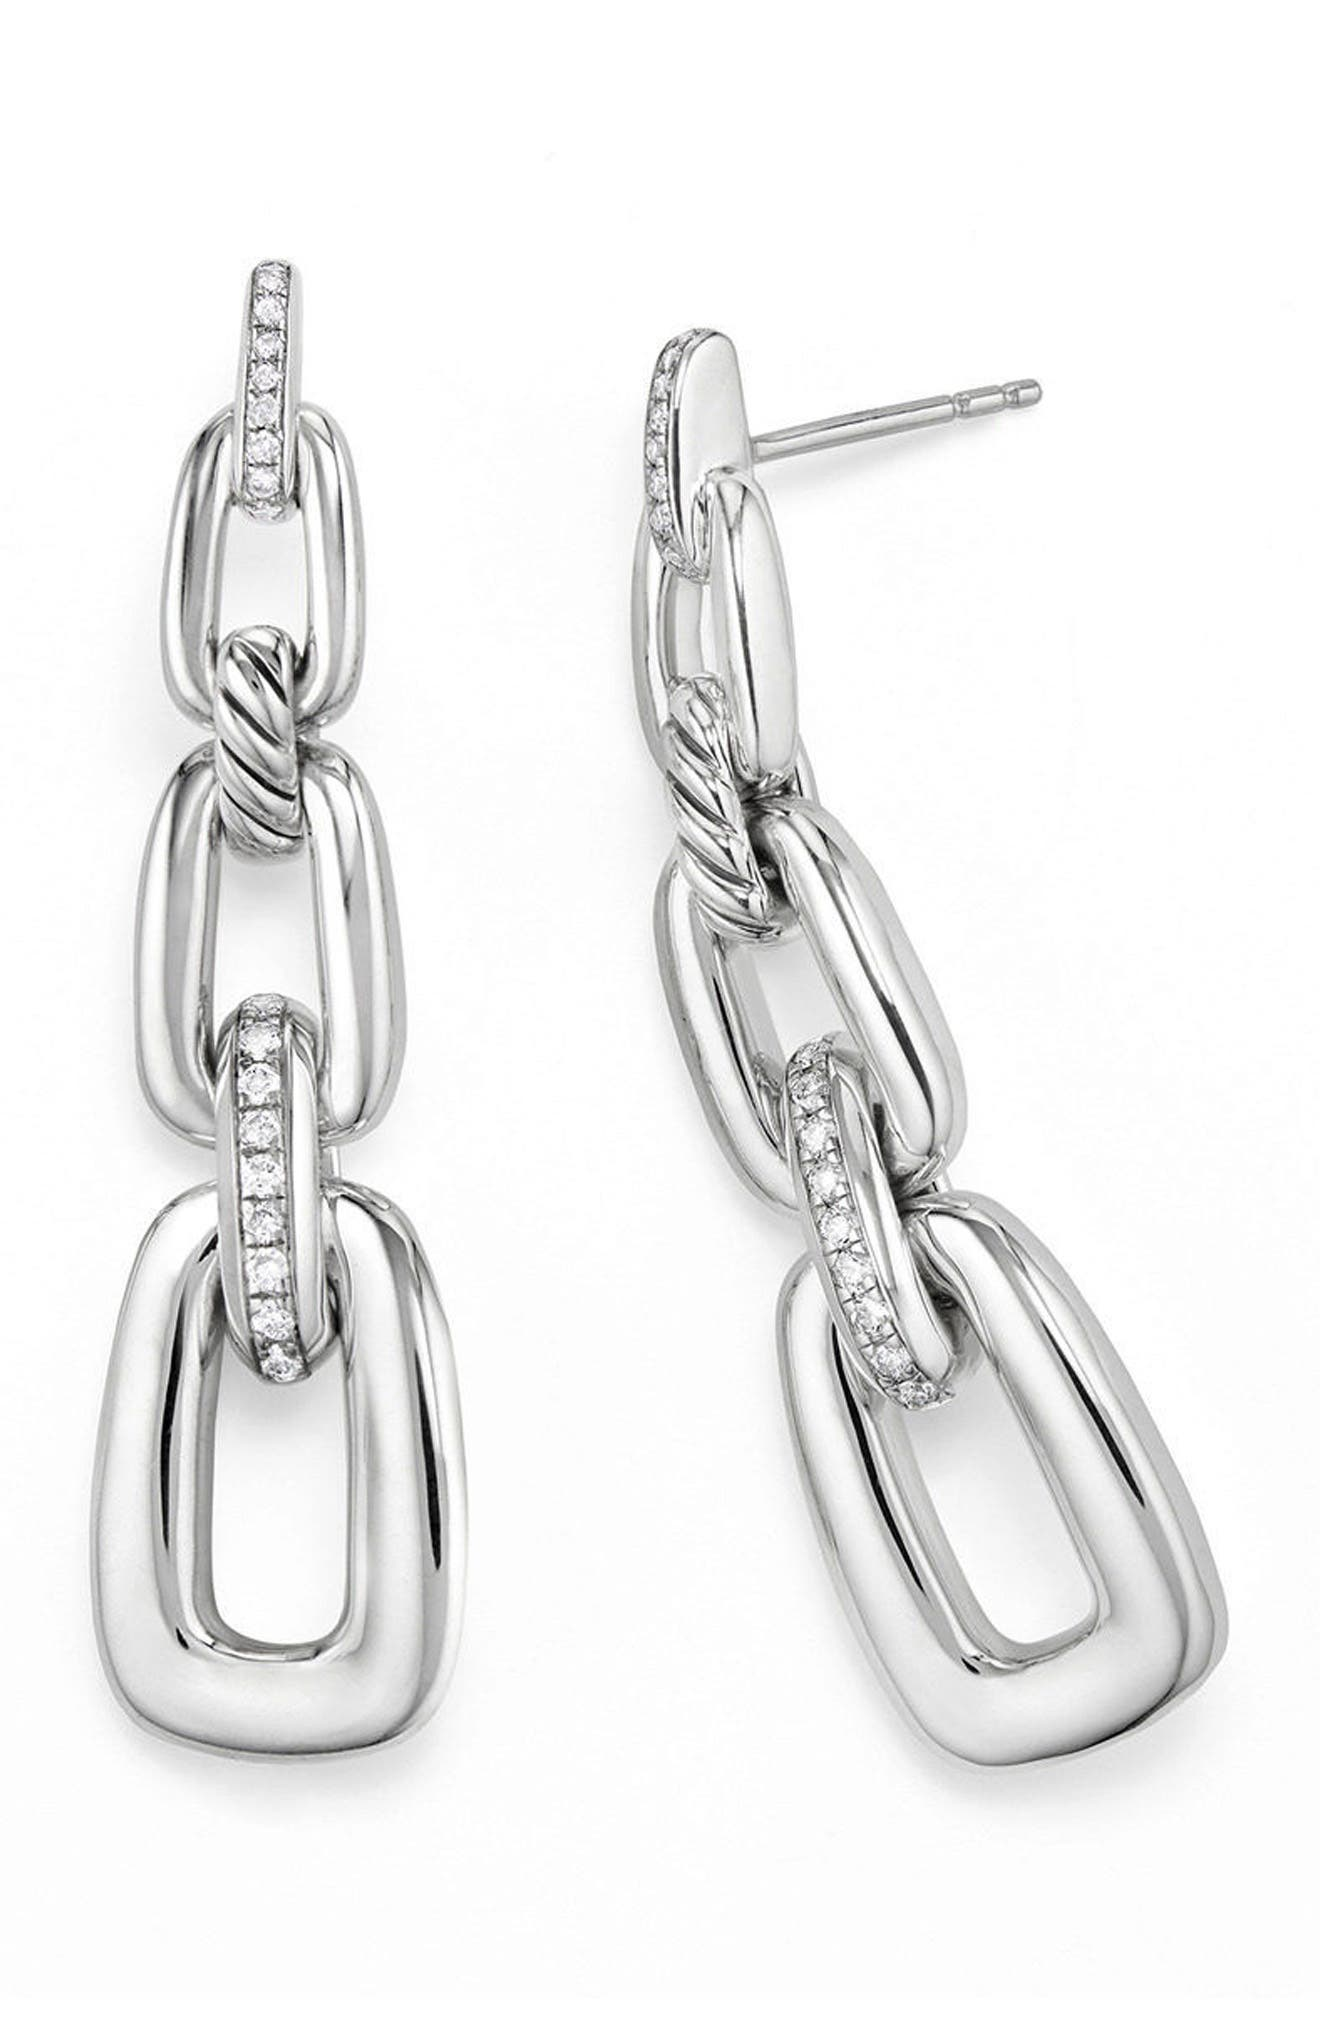 Wellesley Link Chain Drop Earrings with Diamonds,                             Alternate thumbnail 2, color,                             Silver